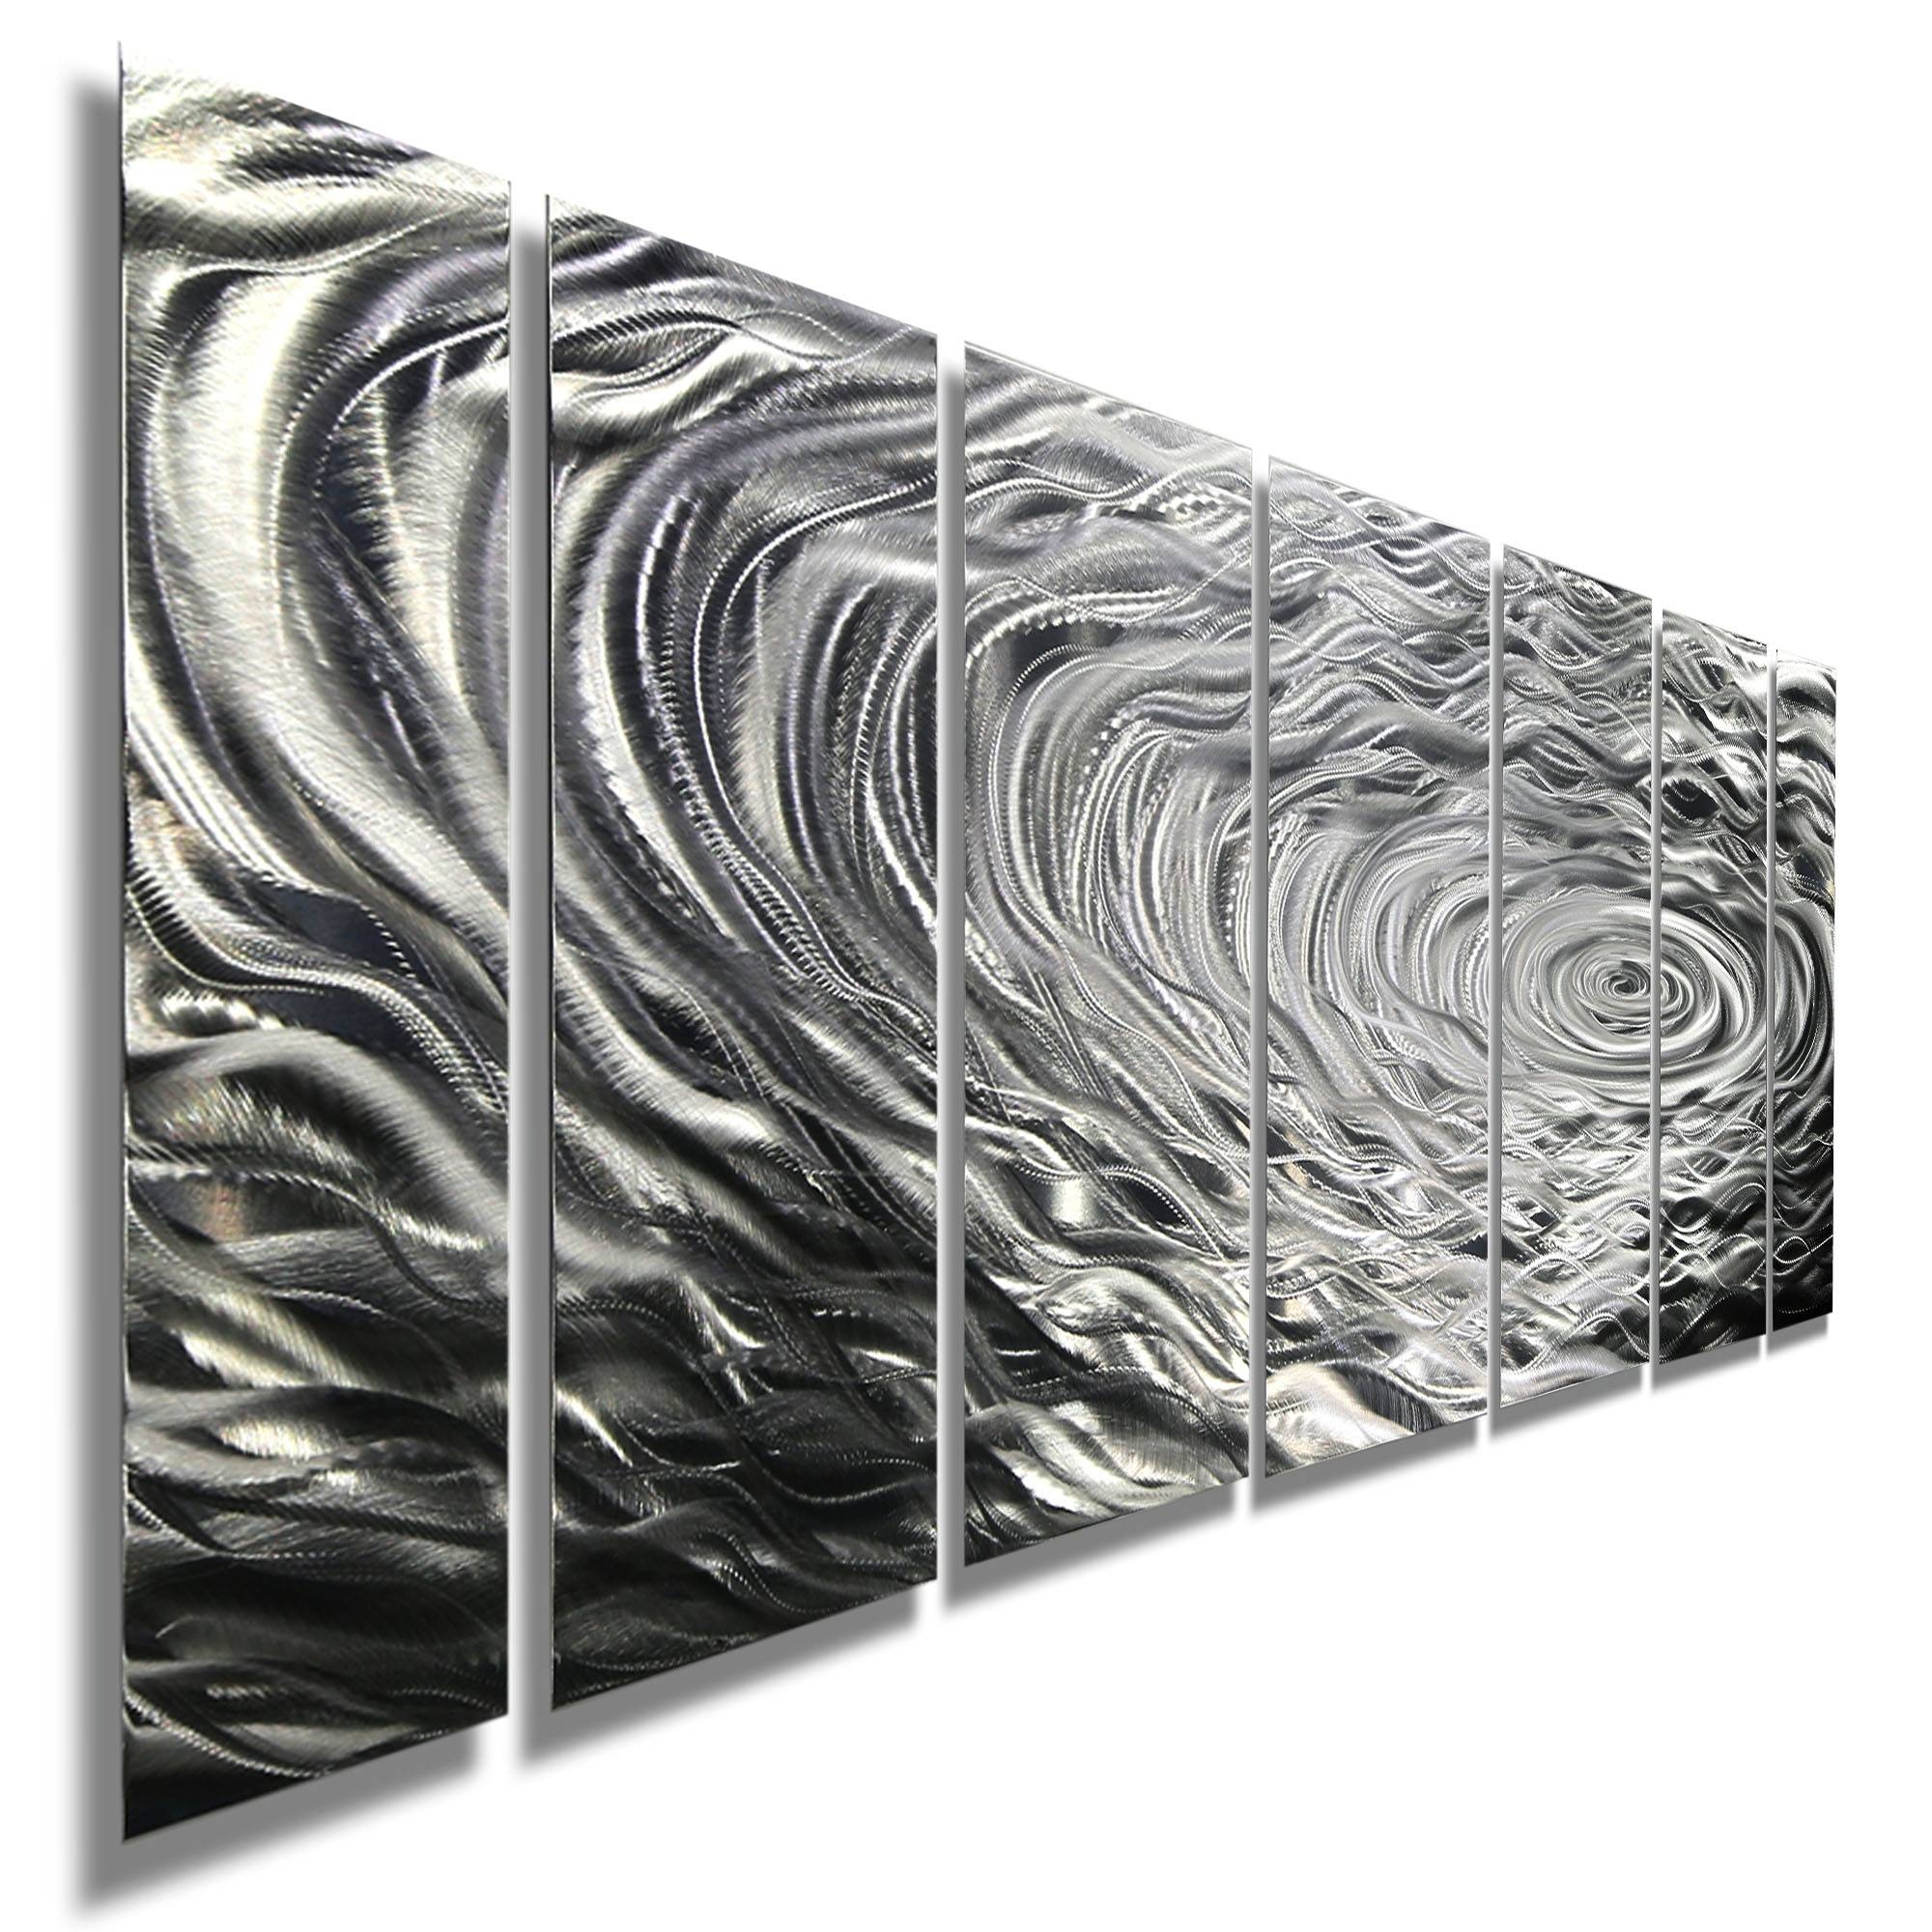 Ripple Effect Xl – Silver Abstract Corporate Metal Wall Art Decor Intended For Most Current Black Silver Wall Art (View 12 of 20)